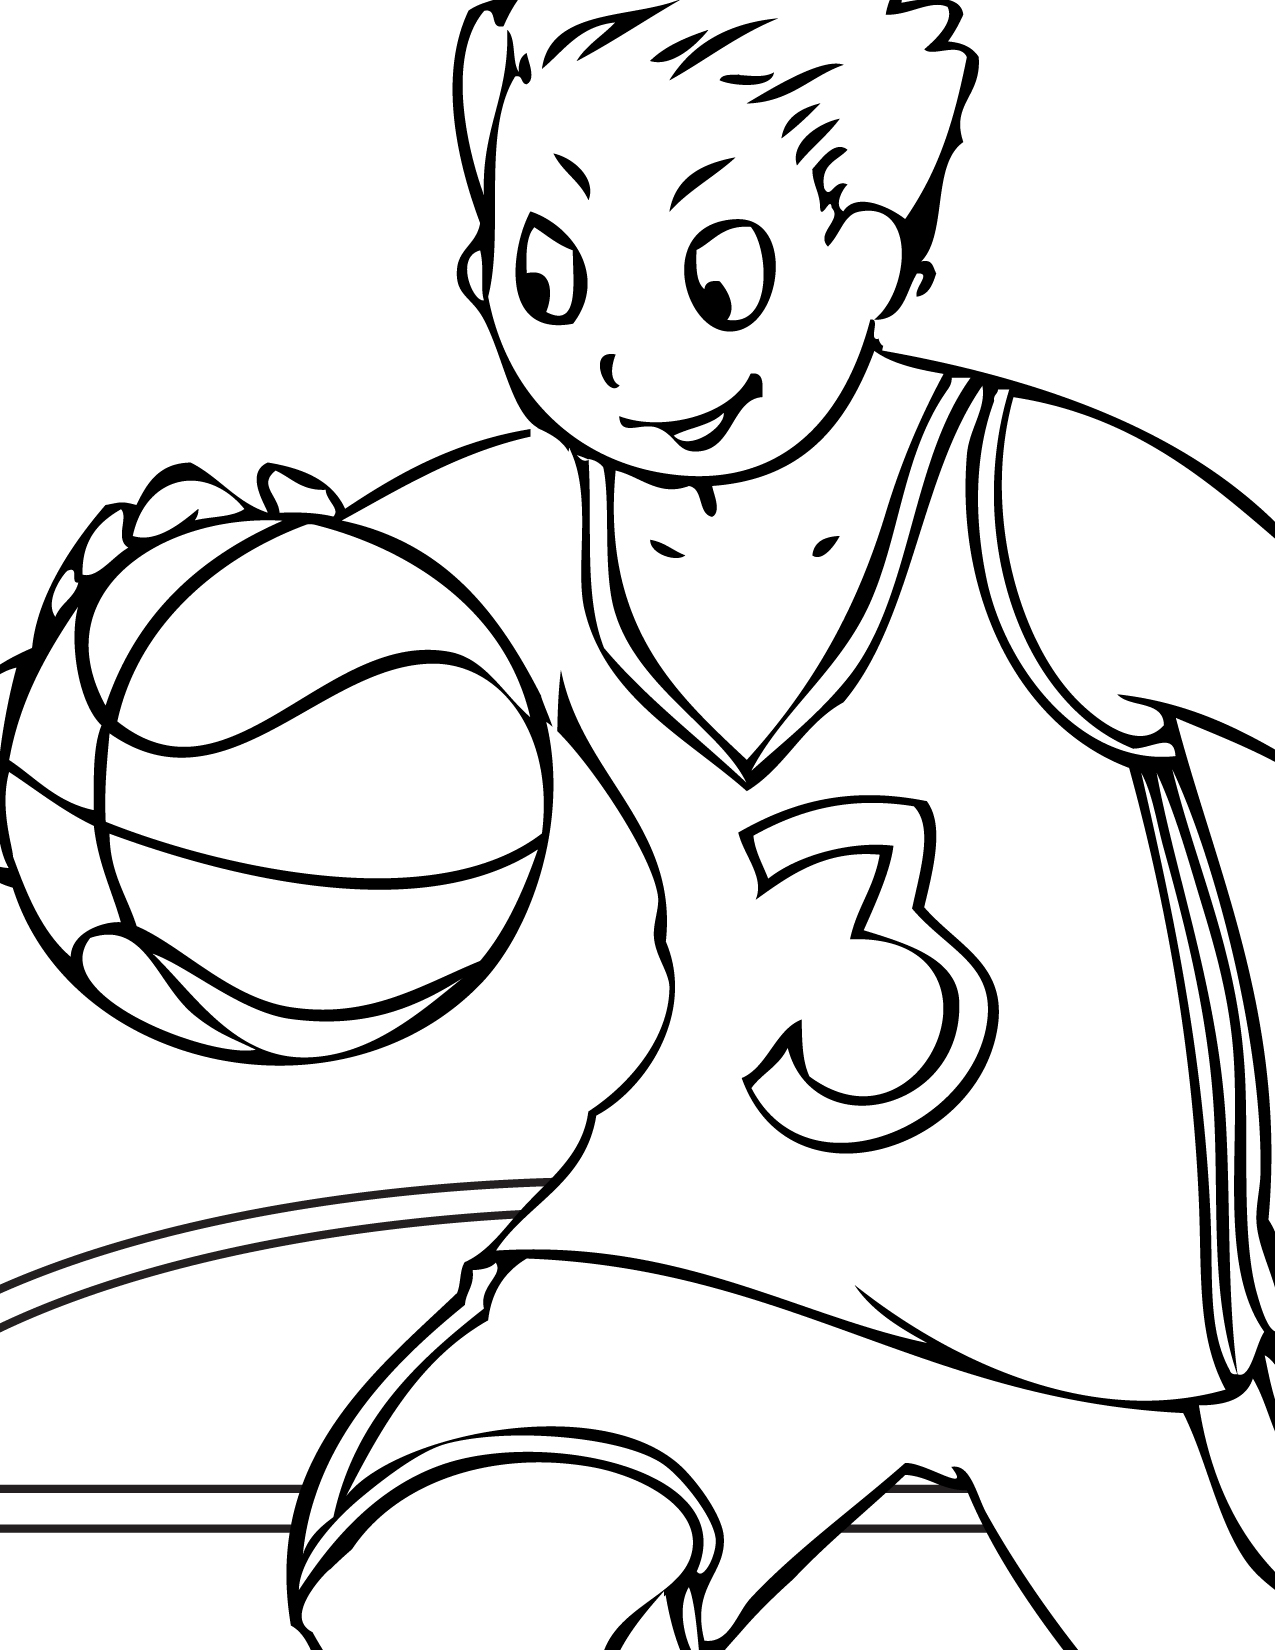 free coloring pages to color online - free sports color sheets murderthestout